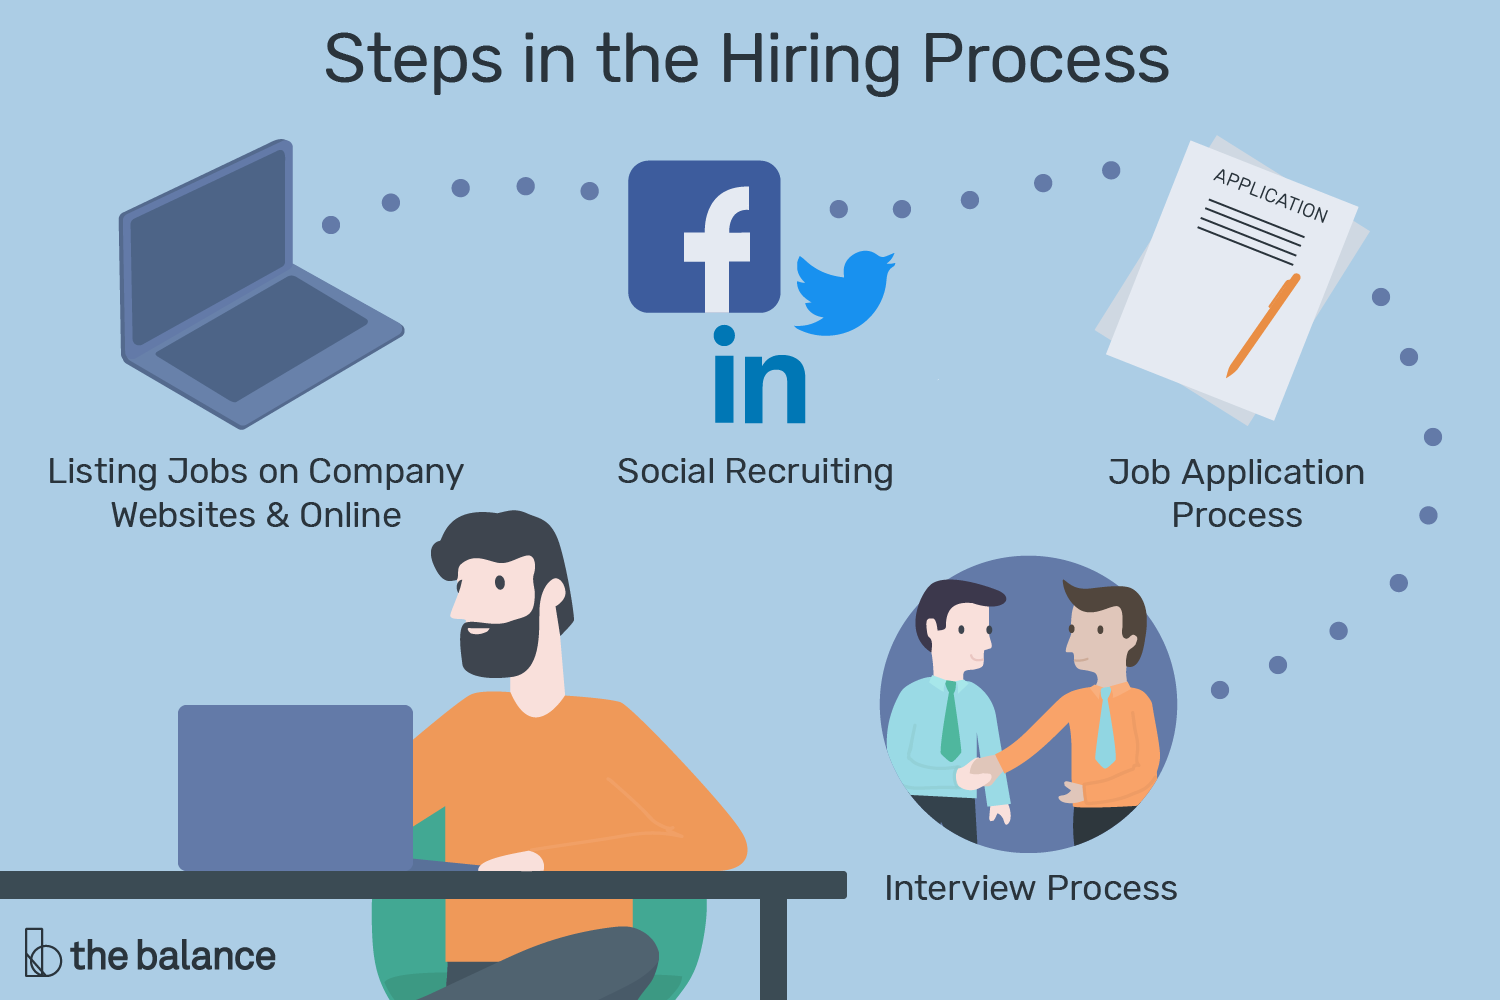 recruitment-and-hiring-process-2062875_final_2-01.png